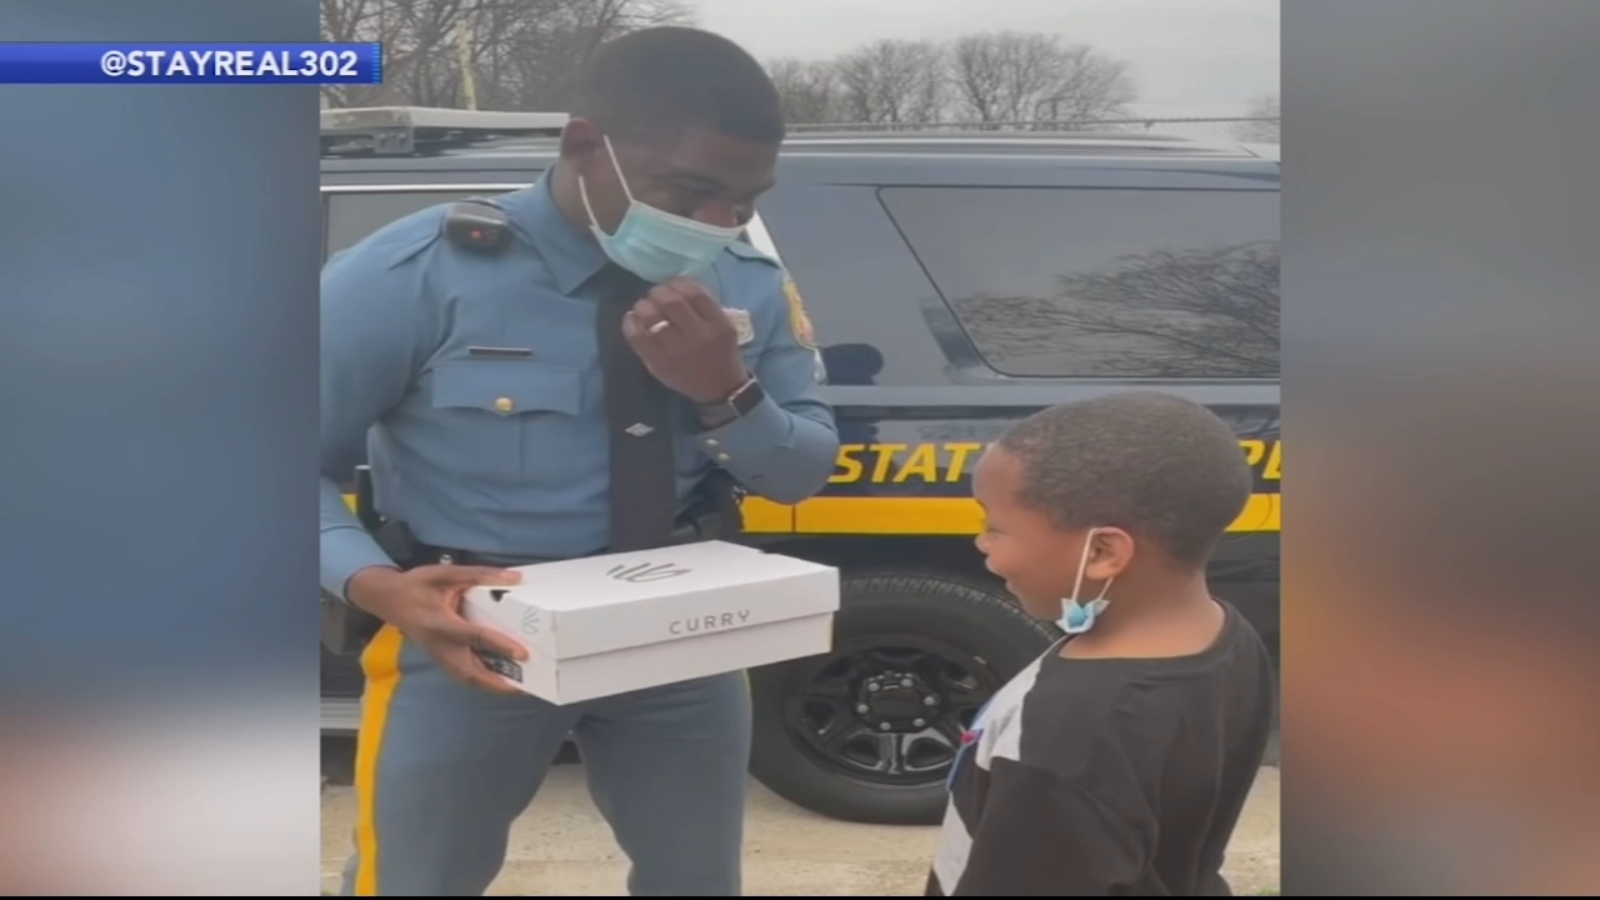 Golden State Warriors' Stephen Curry gives jersey to Delaware state trooper after 76ers game ...